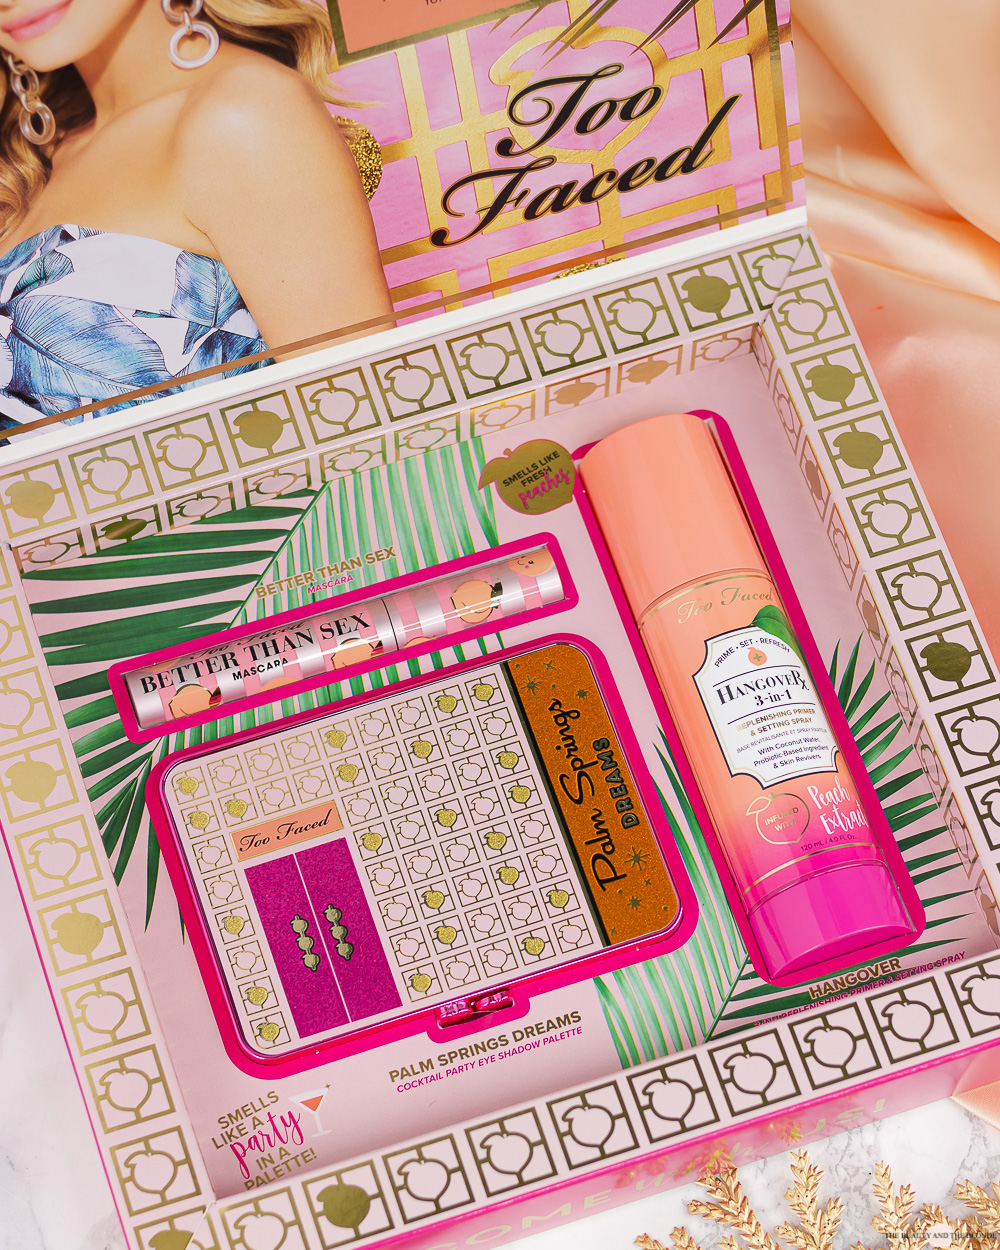 Too Faced Palm Springs Collection